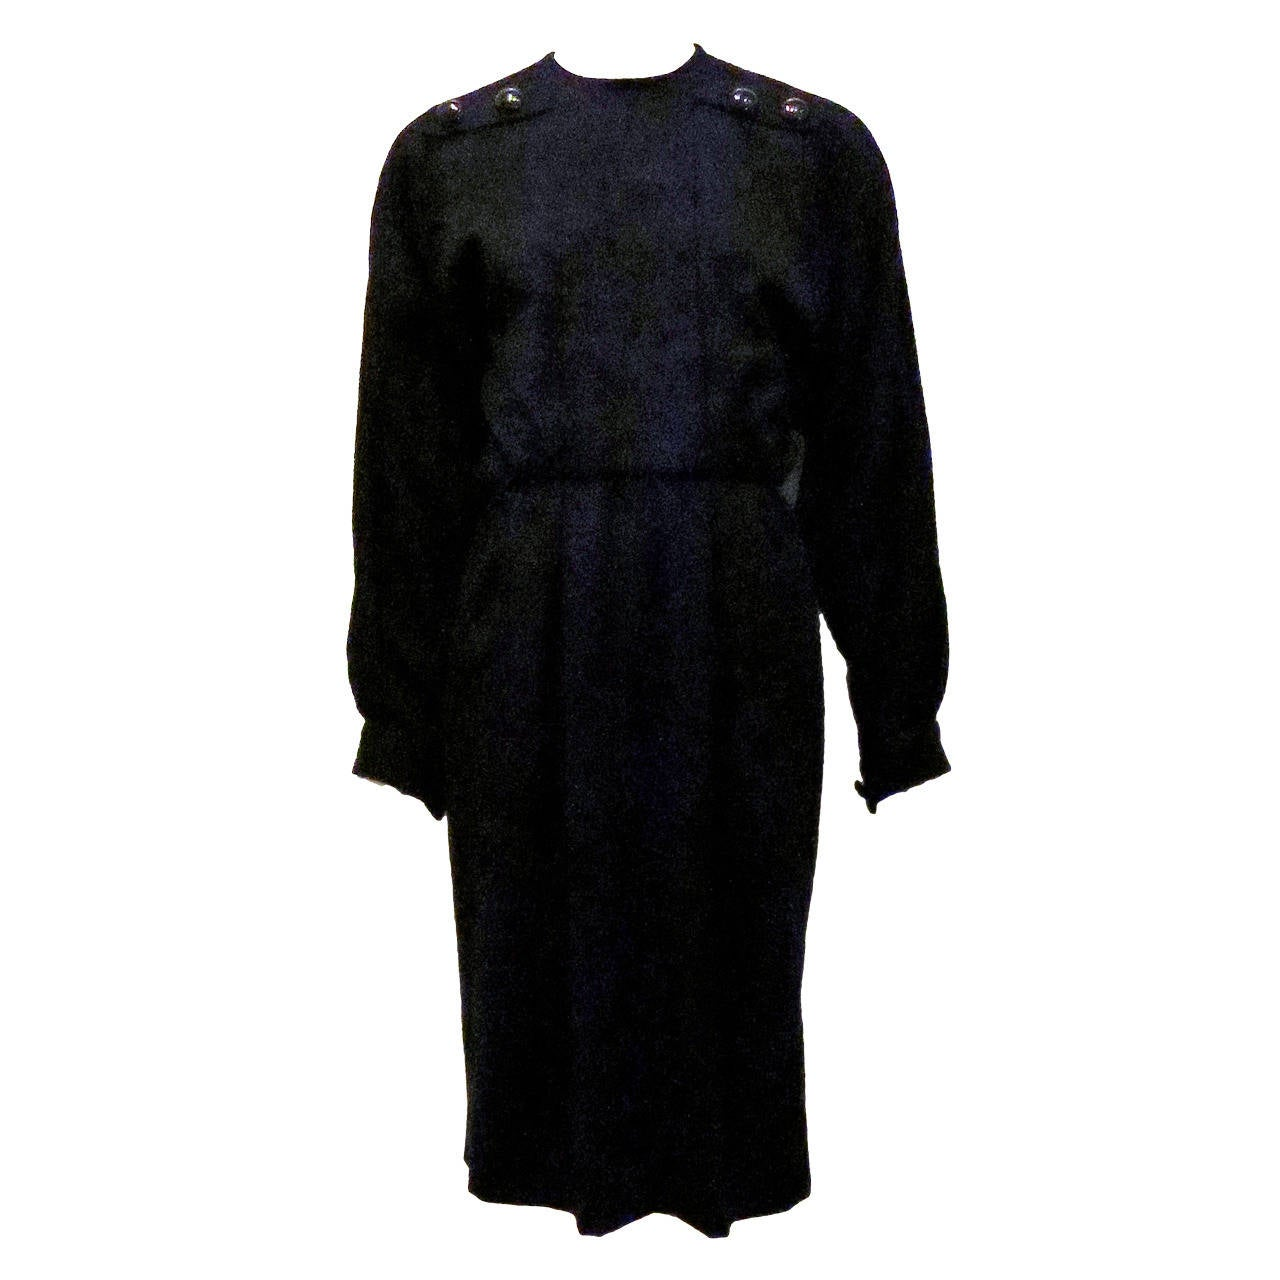 Galanos Black Long Sleeve Dress With Button Detail